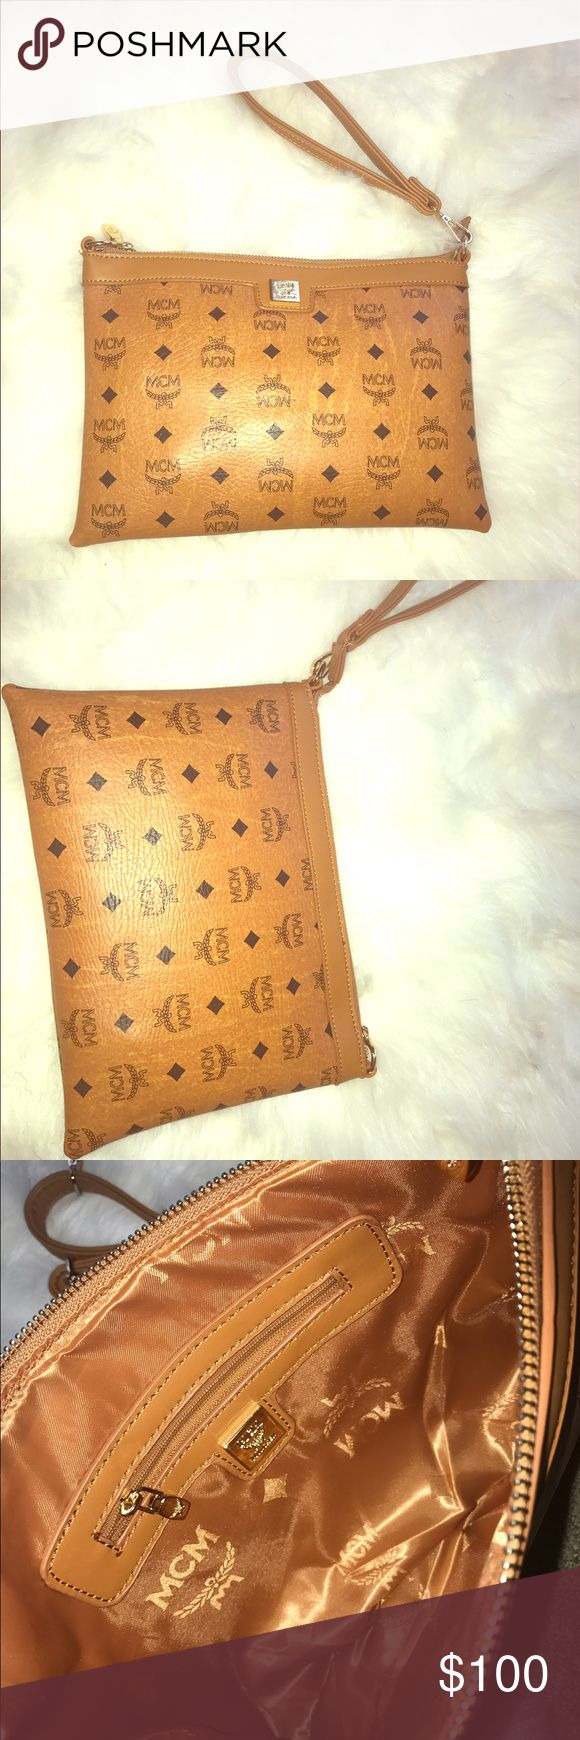 MCM WRISTLET ** HOT SELLER**price cut today only MCM clutch cognac color great condition comes with bag MCM Bags Clutches & Wristlets